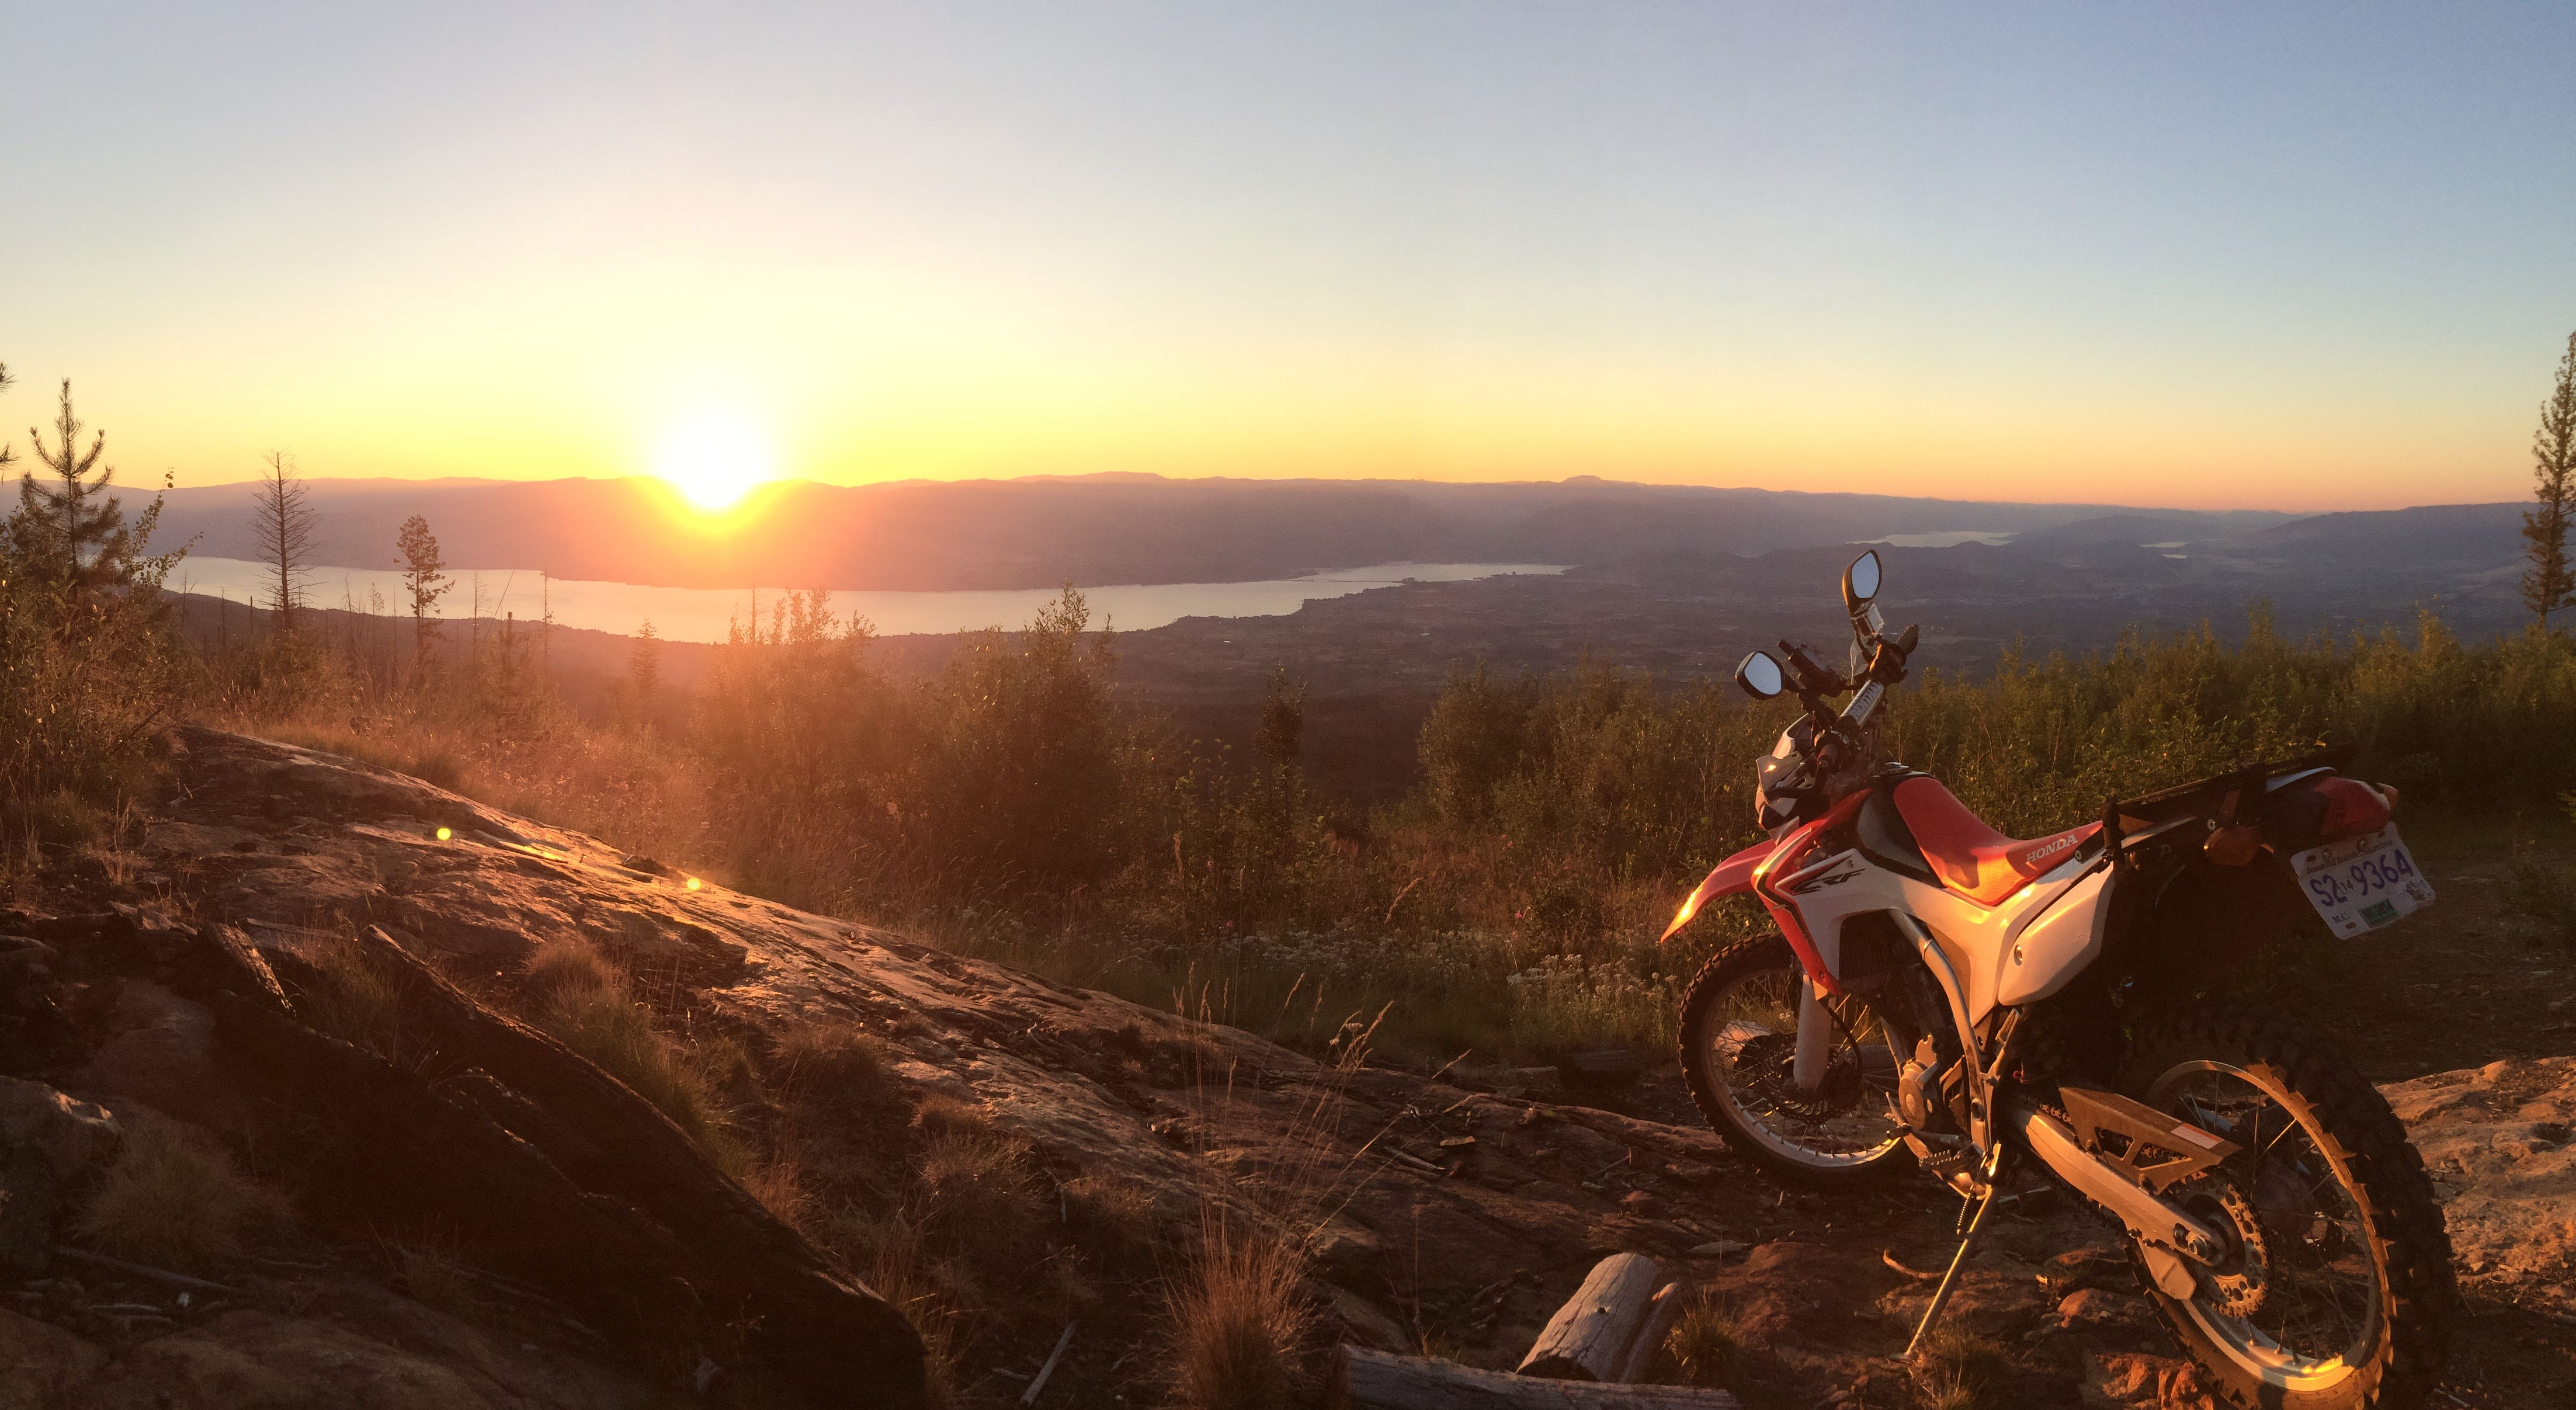 crf250l-sunset-view